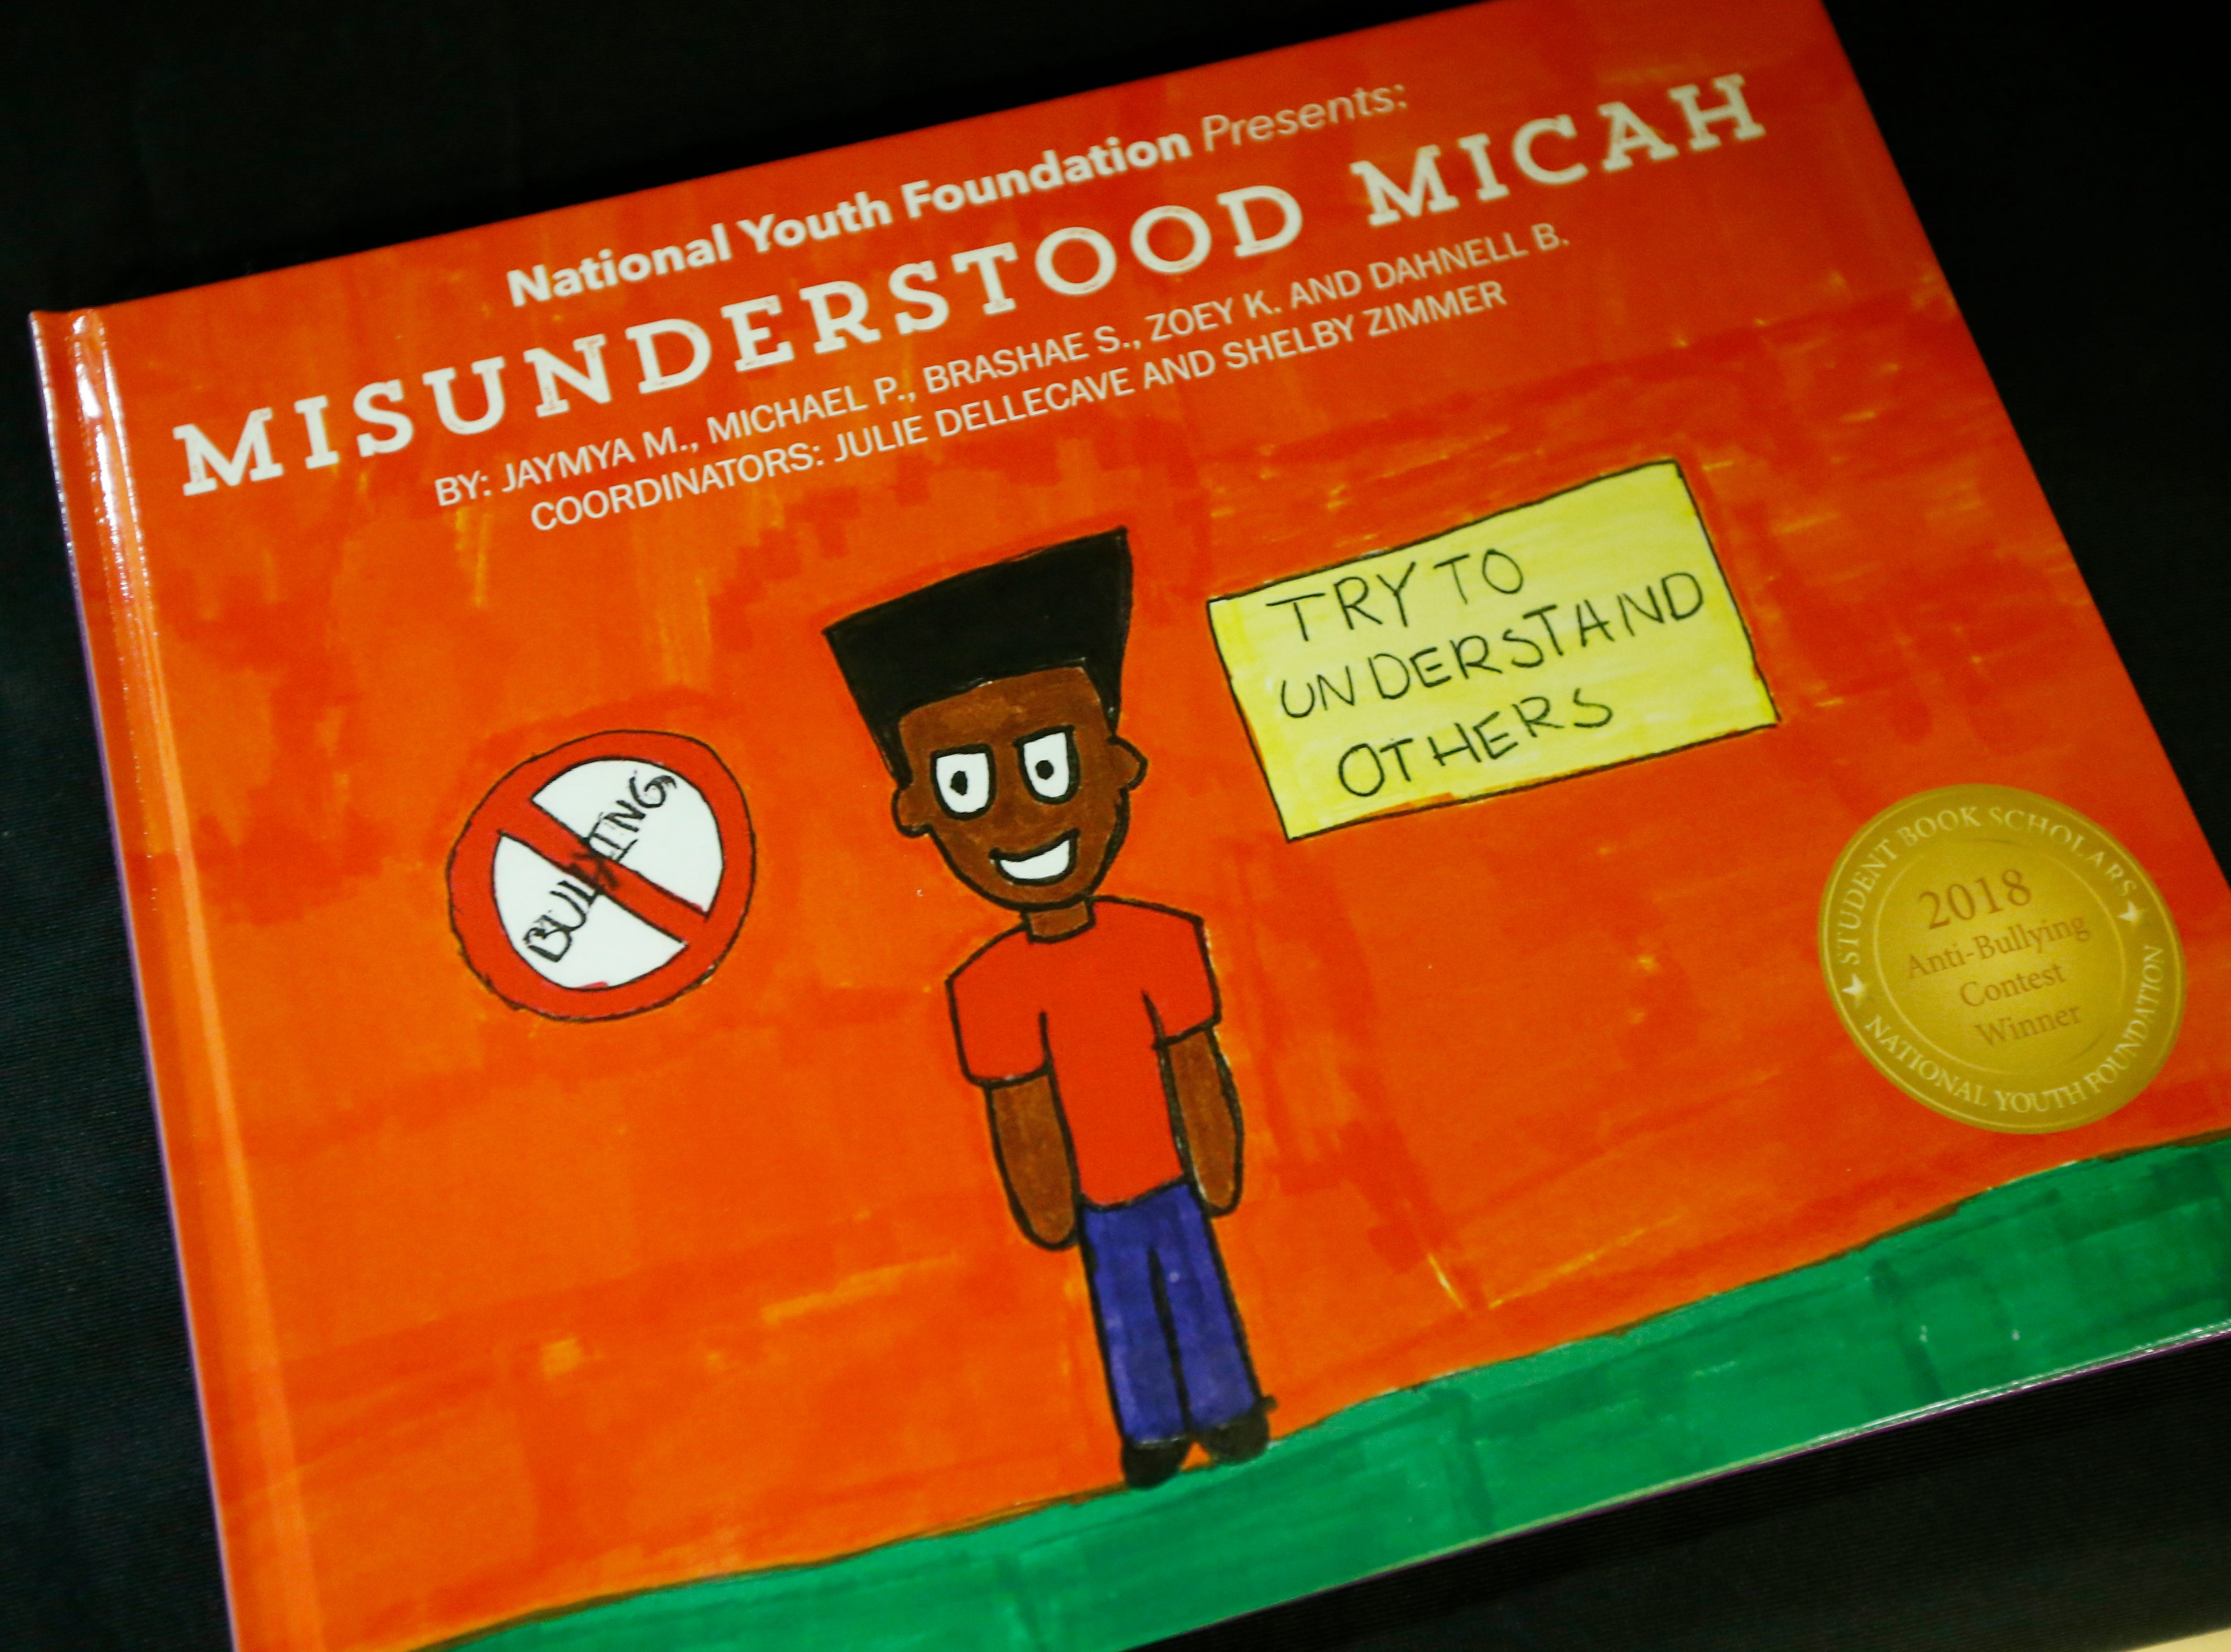 """The cover of """"Misunderstanding Micah"""" written and illustrated by students at Winton Hills Academy in Cincinnati on Tuesday, Sept. 18, 2018. Five students of the academy were named winners, becoming published authors, of a national contest for a book about anti-bullying. The students' book, """"Misunderstanding Micah"""" was selected as the winner of the 2018 National Student Book Scholar Competition by The National Youth Foundation."""